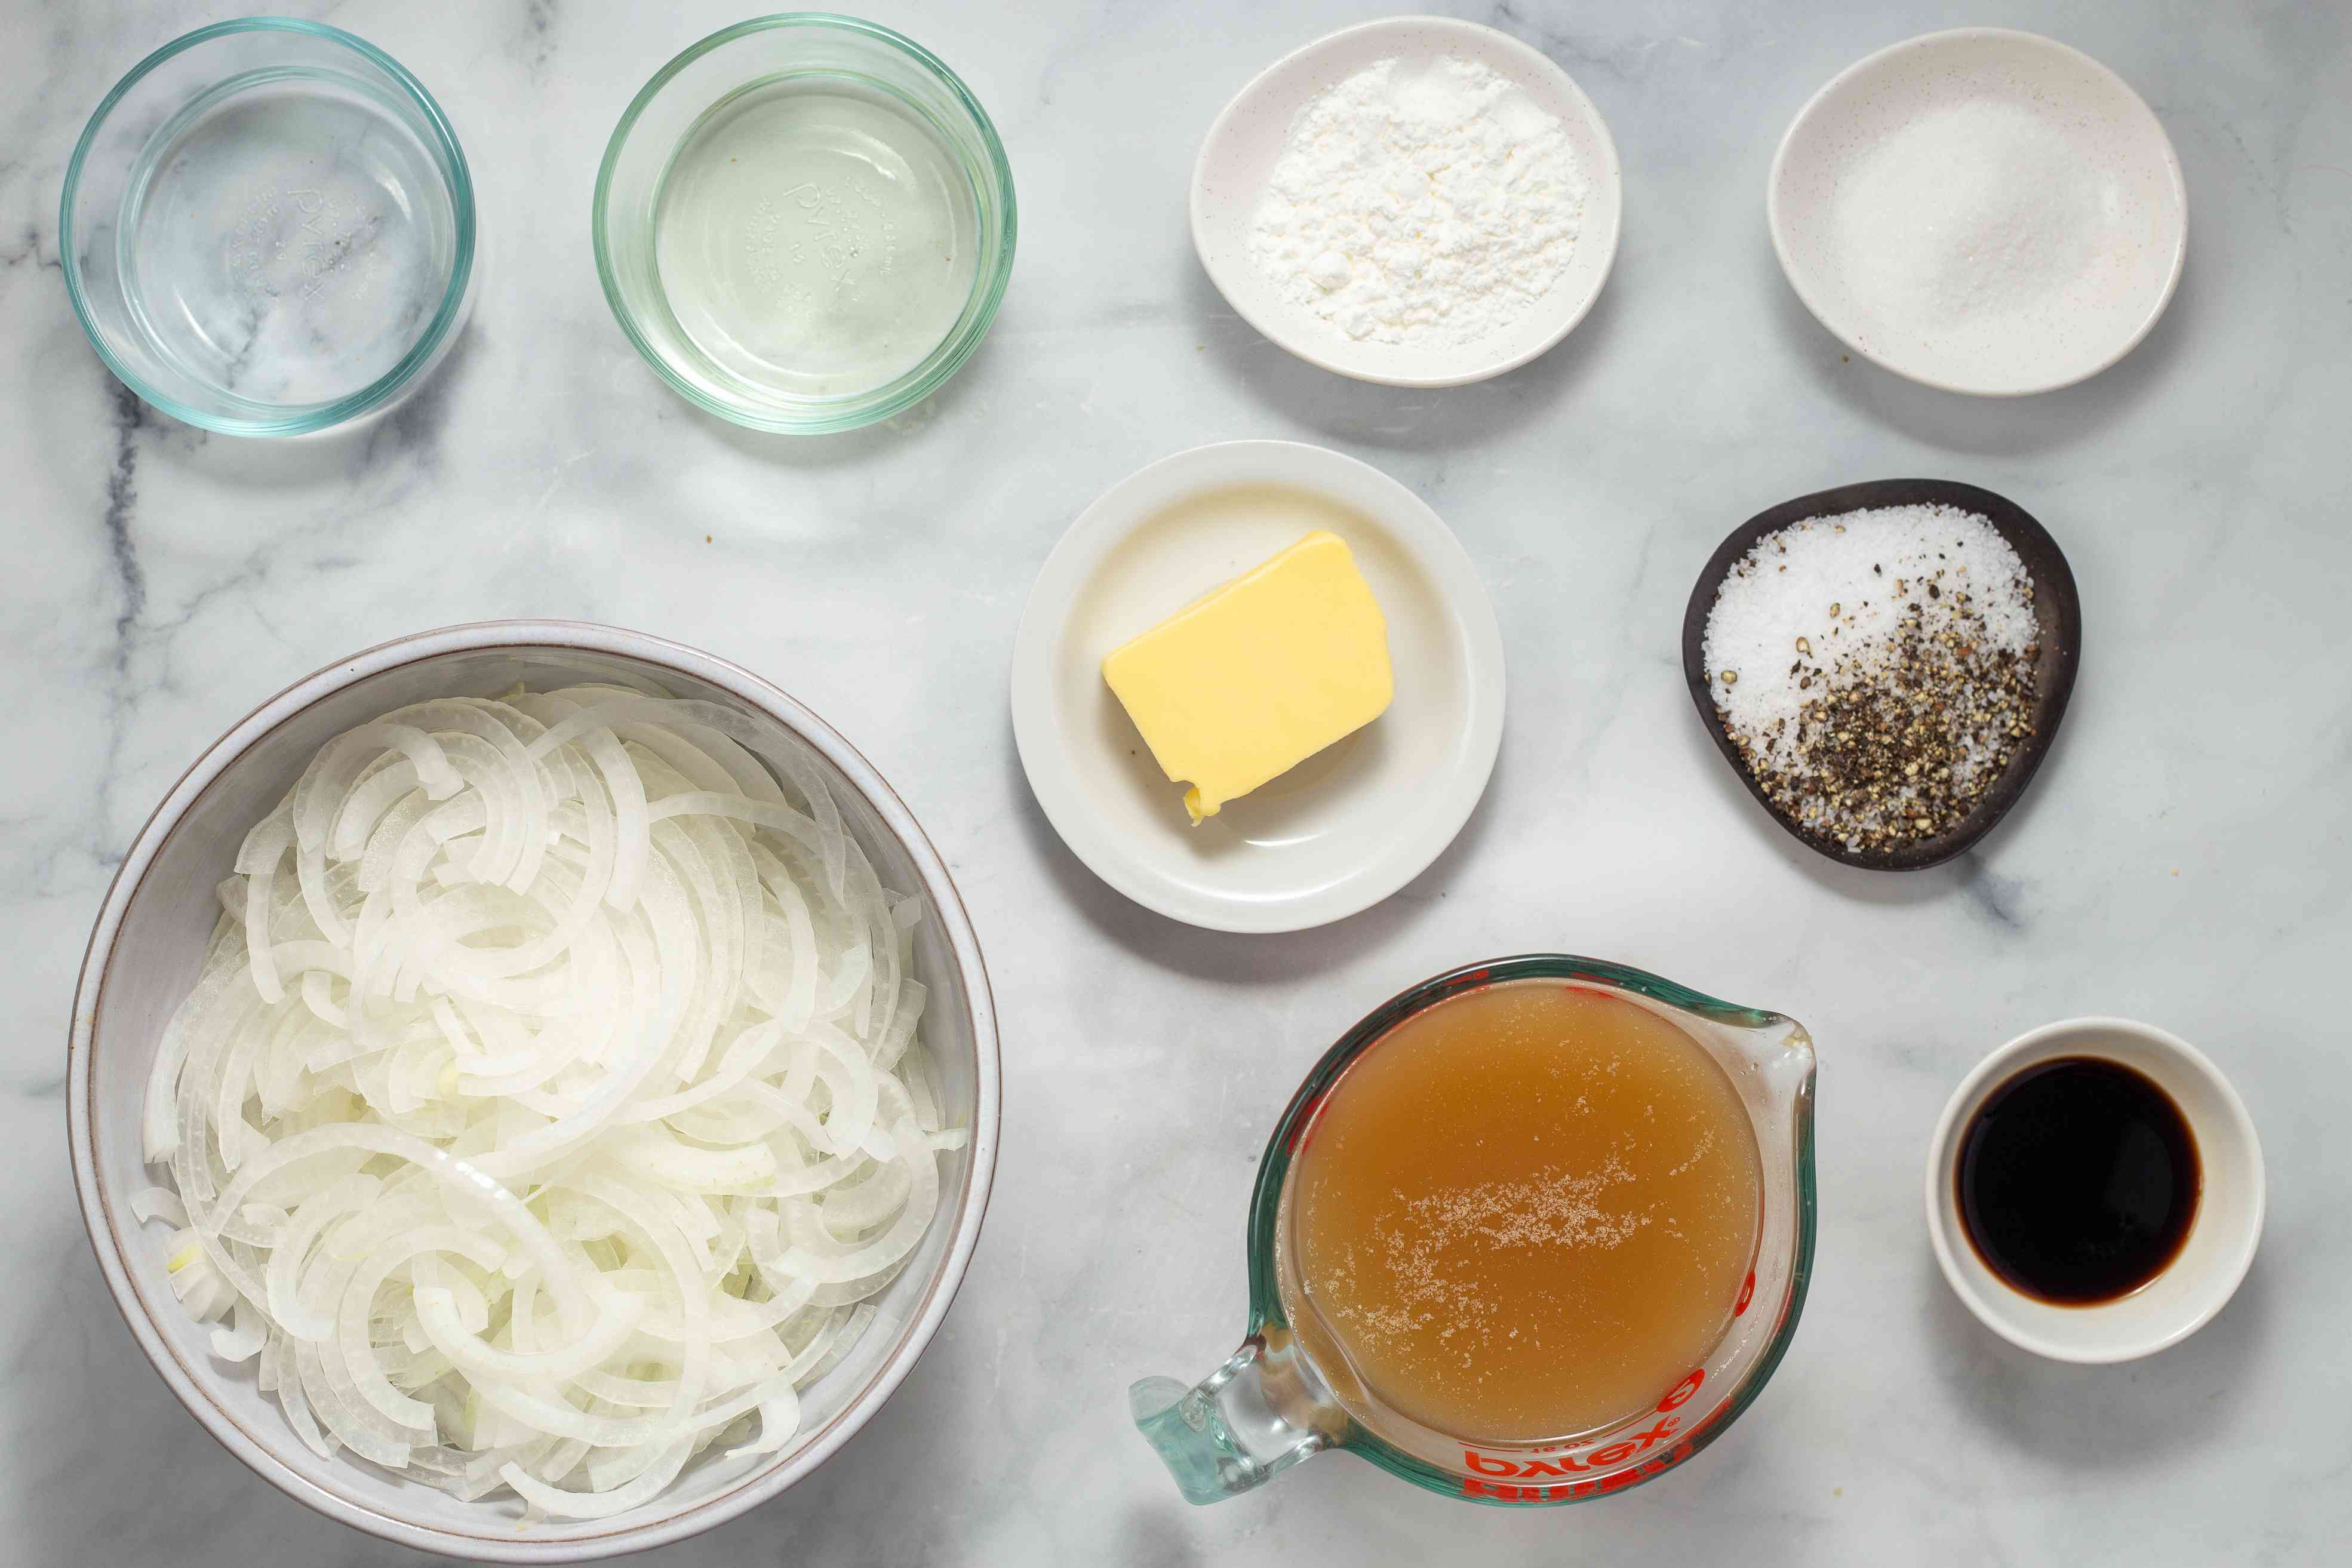 Ingredients for bangers and mash